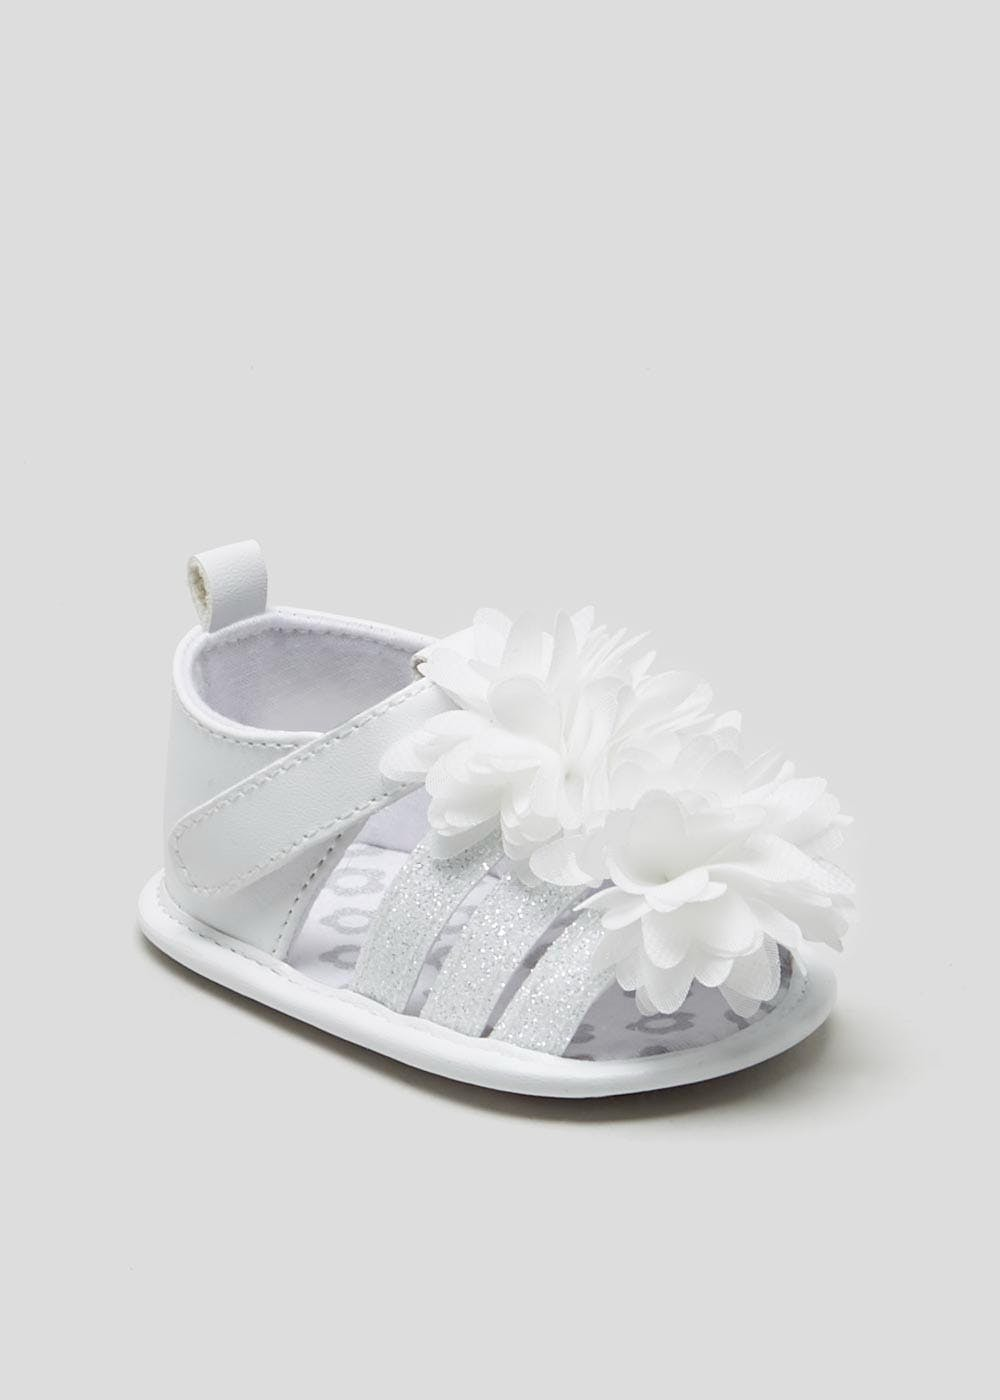 Girls Soft Sole Occasion Baby Sandals (Newborn-18mths) – White – Matalan